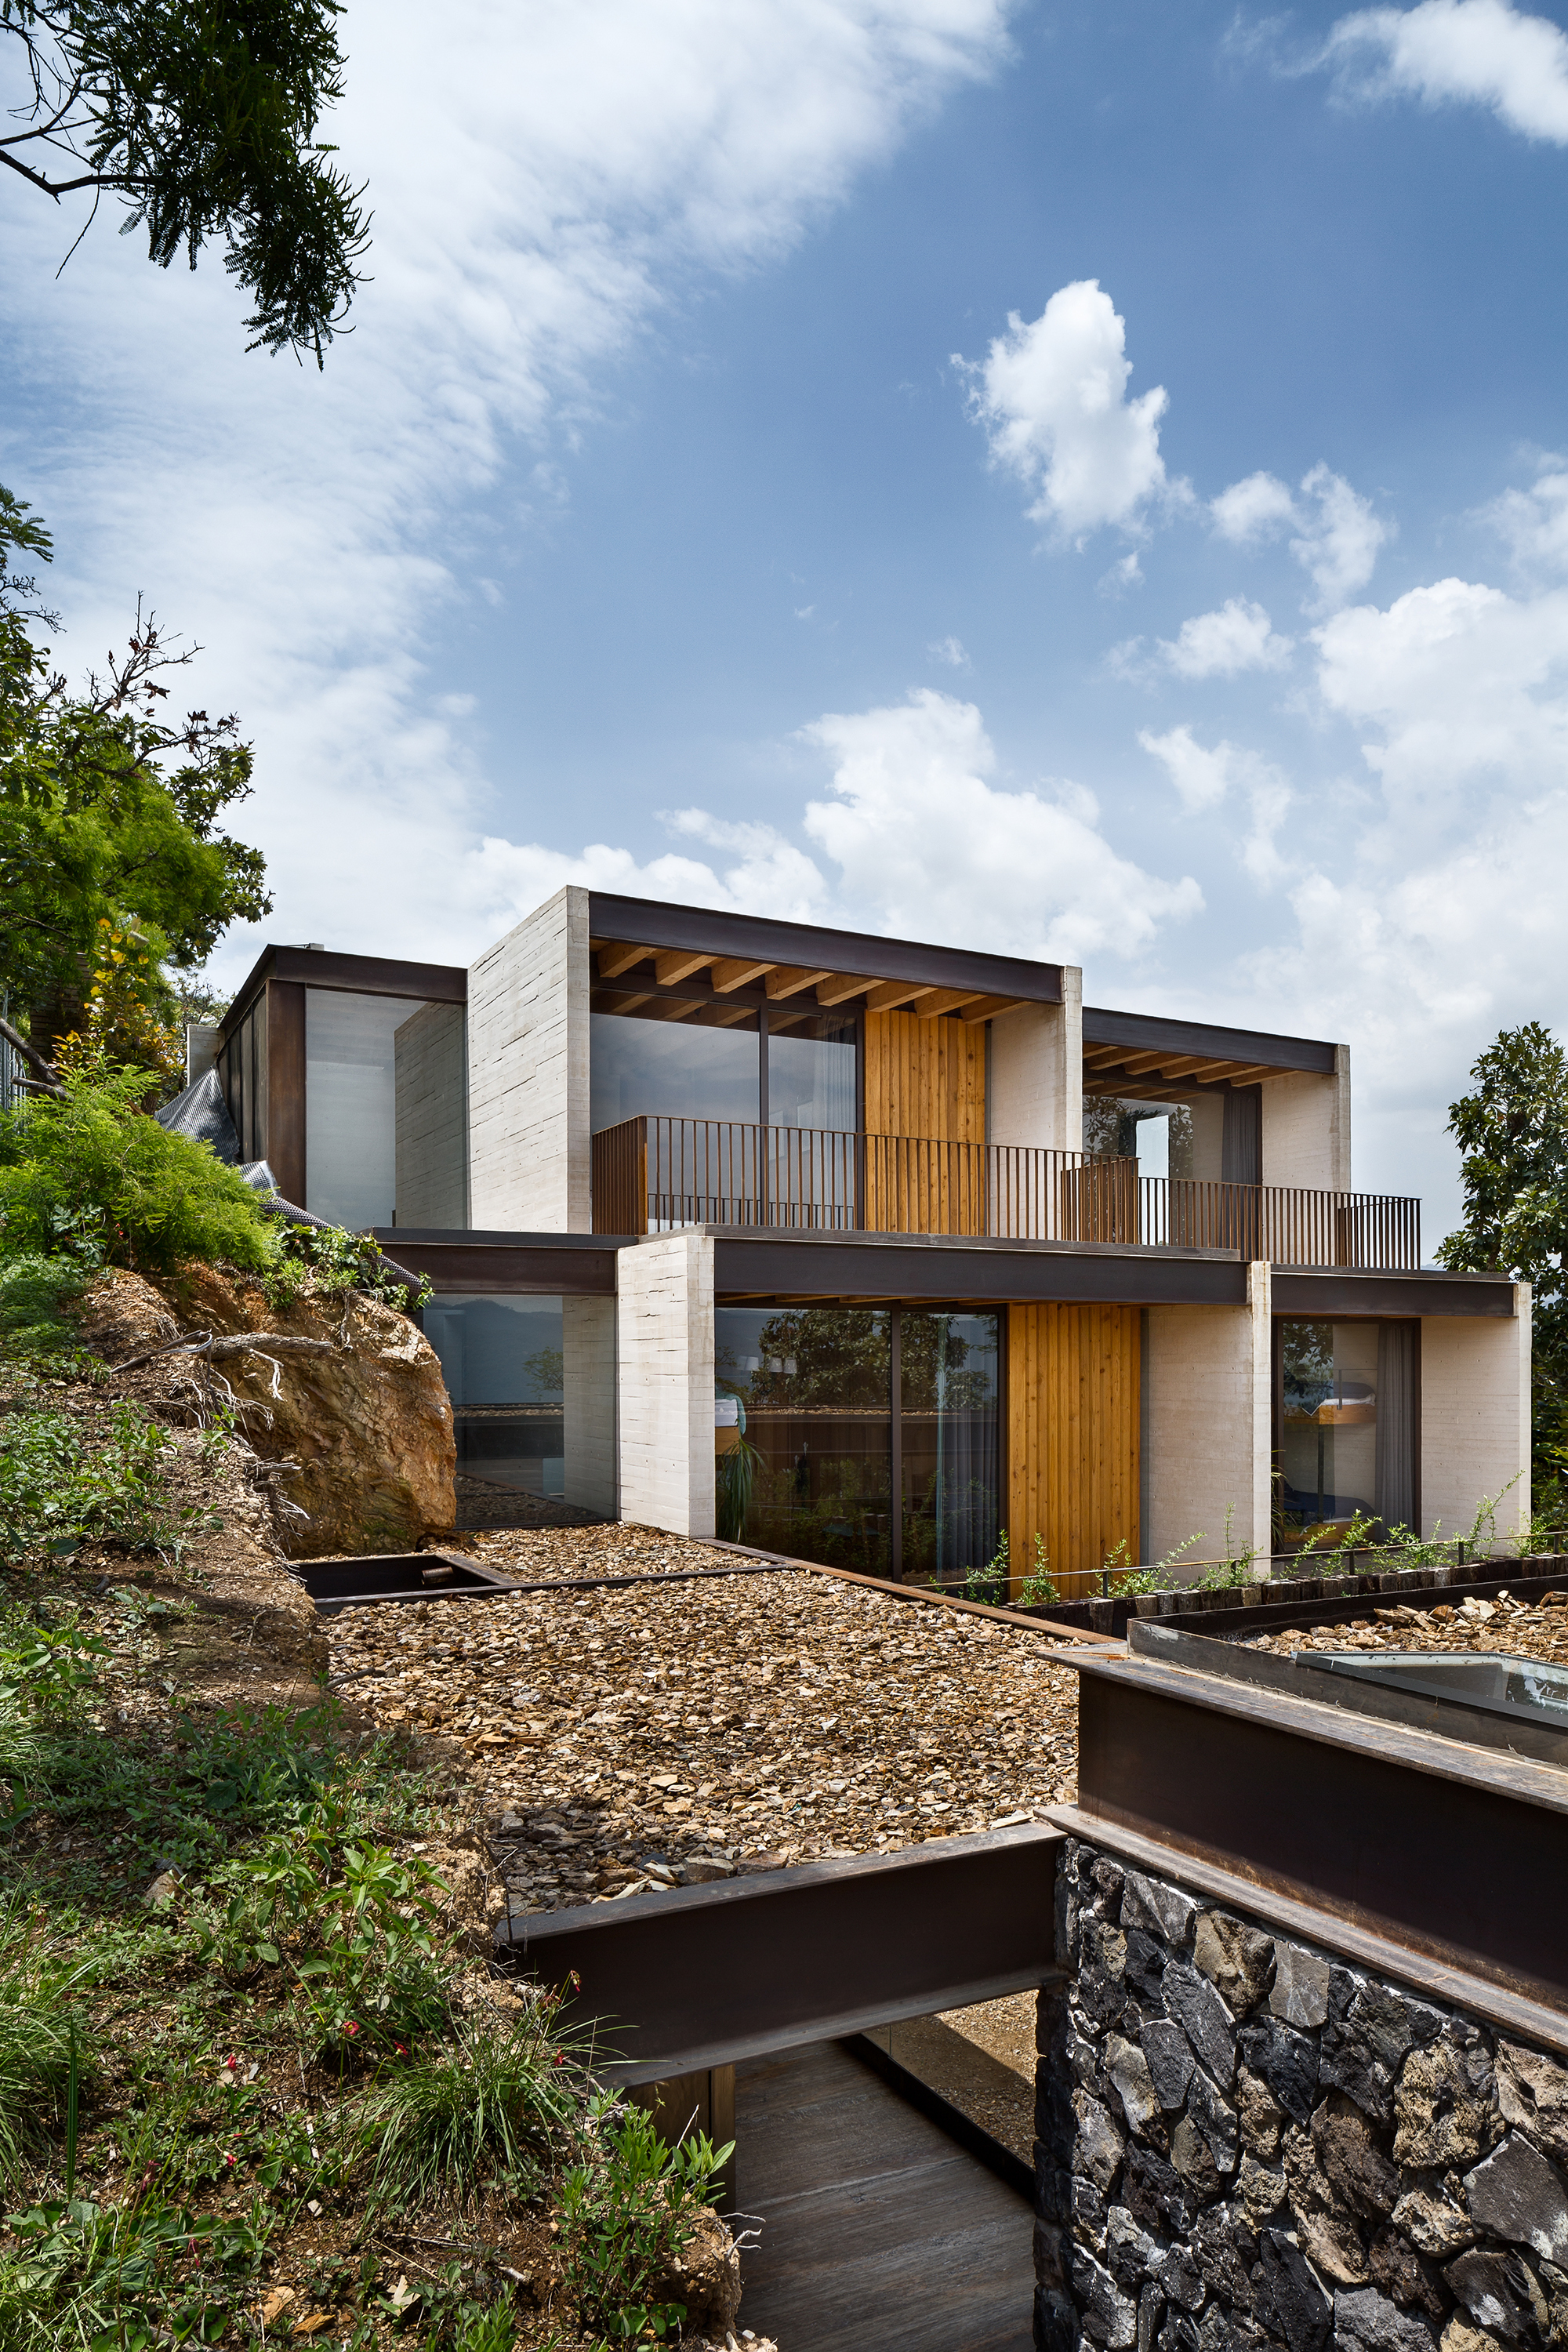 Tuc n house taller h ctor barroso archdaily for Modern hill house designs